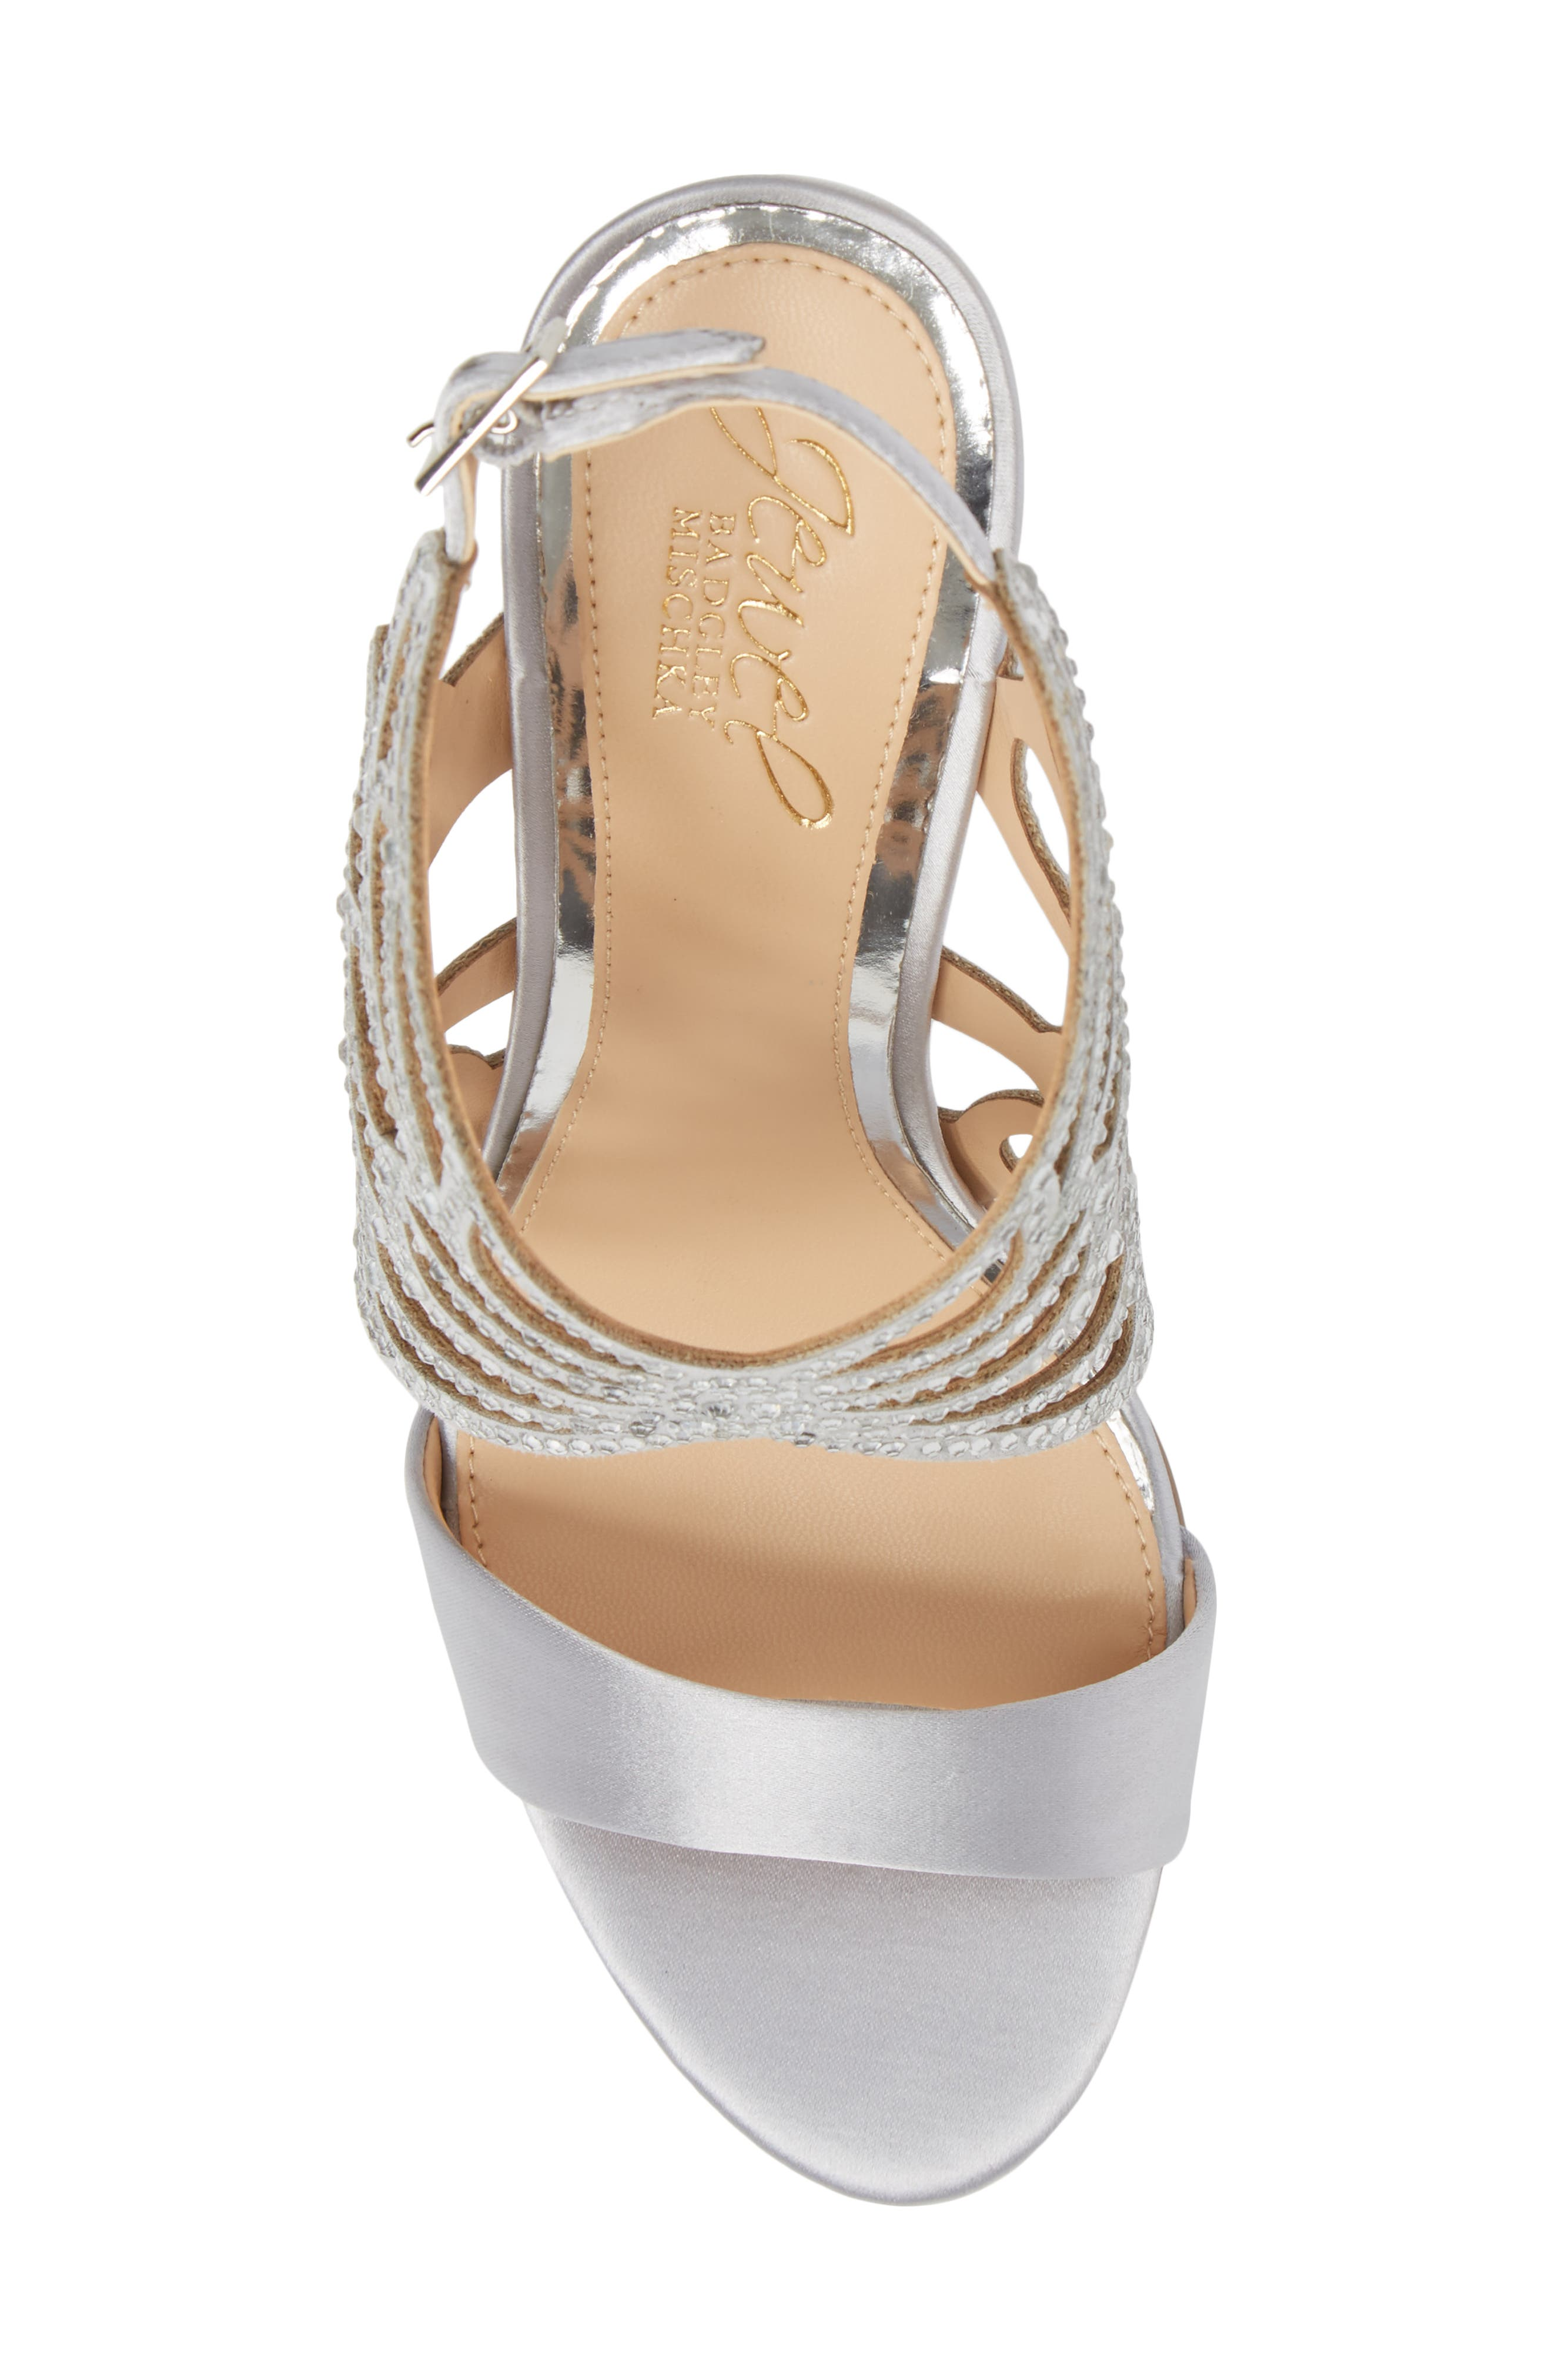 Taresa Crystal Embellished Butterfly Sandal,                             Alternate thumbnail 5, color,                             Silver Satin